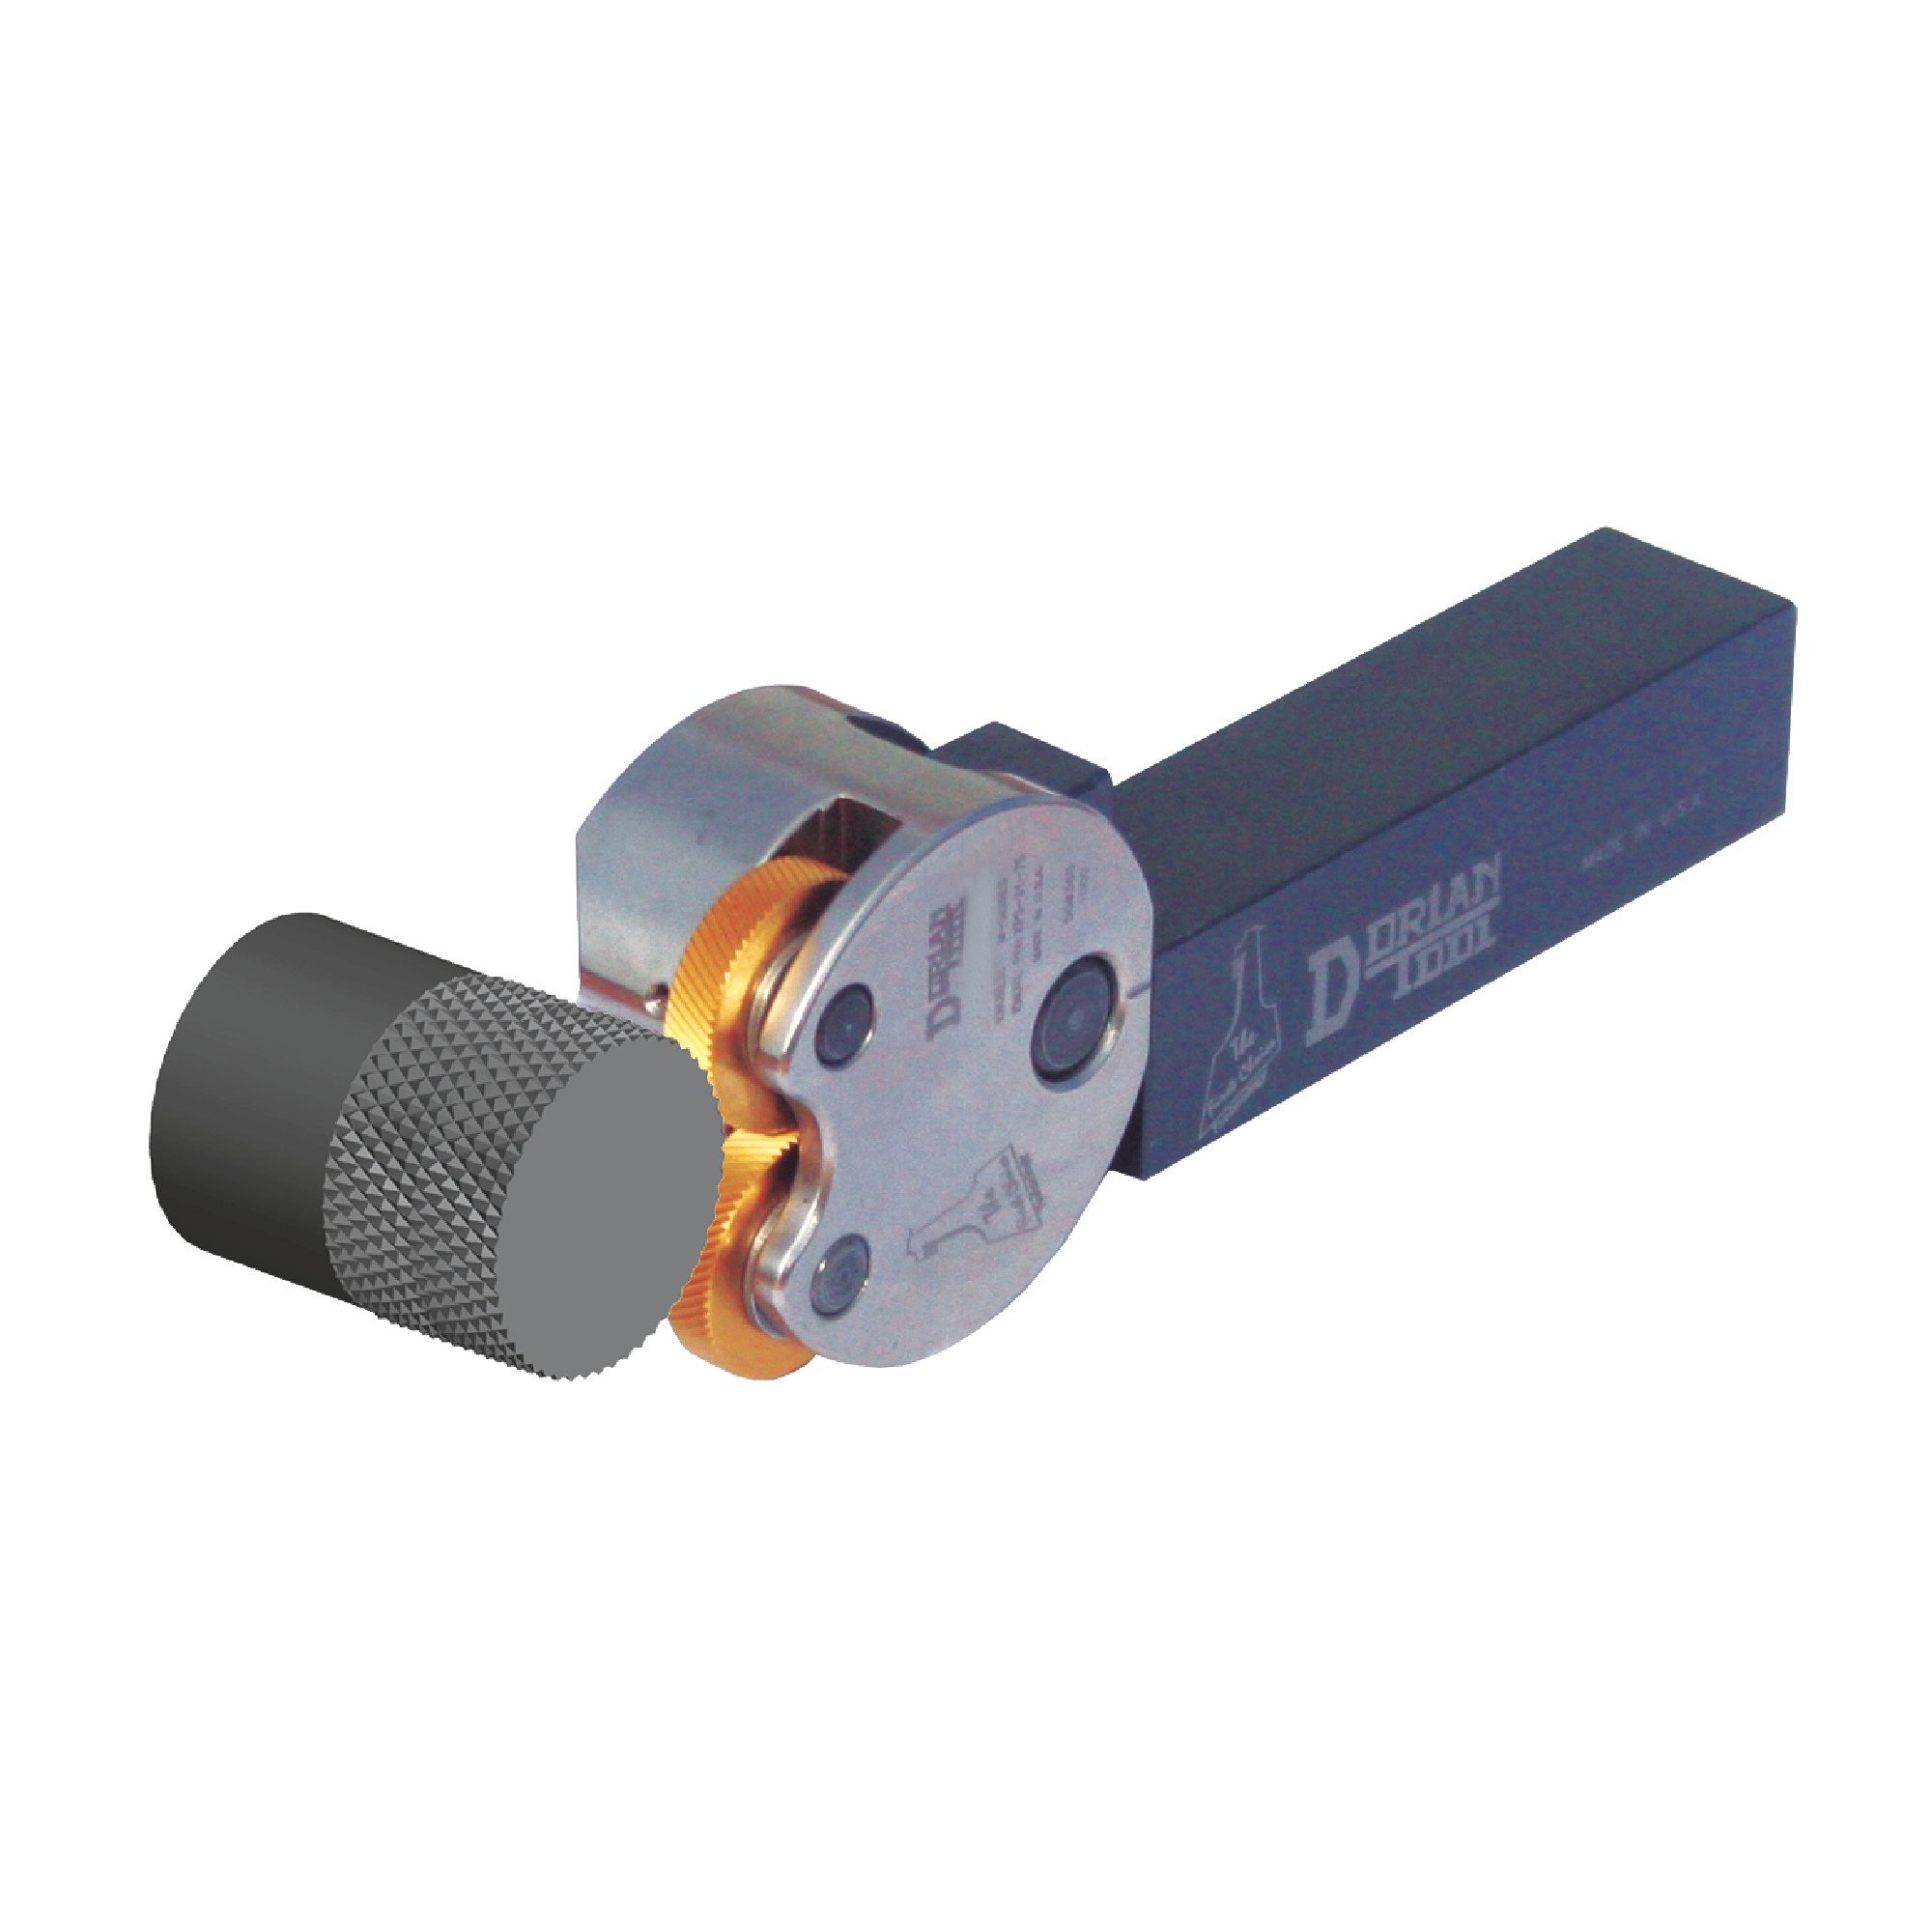 SCK - Self-Centering Knurling Tools For CNC Lathe